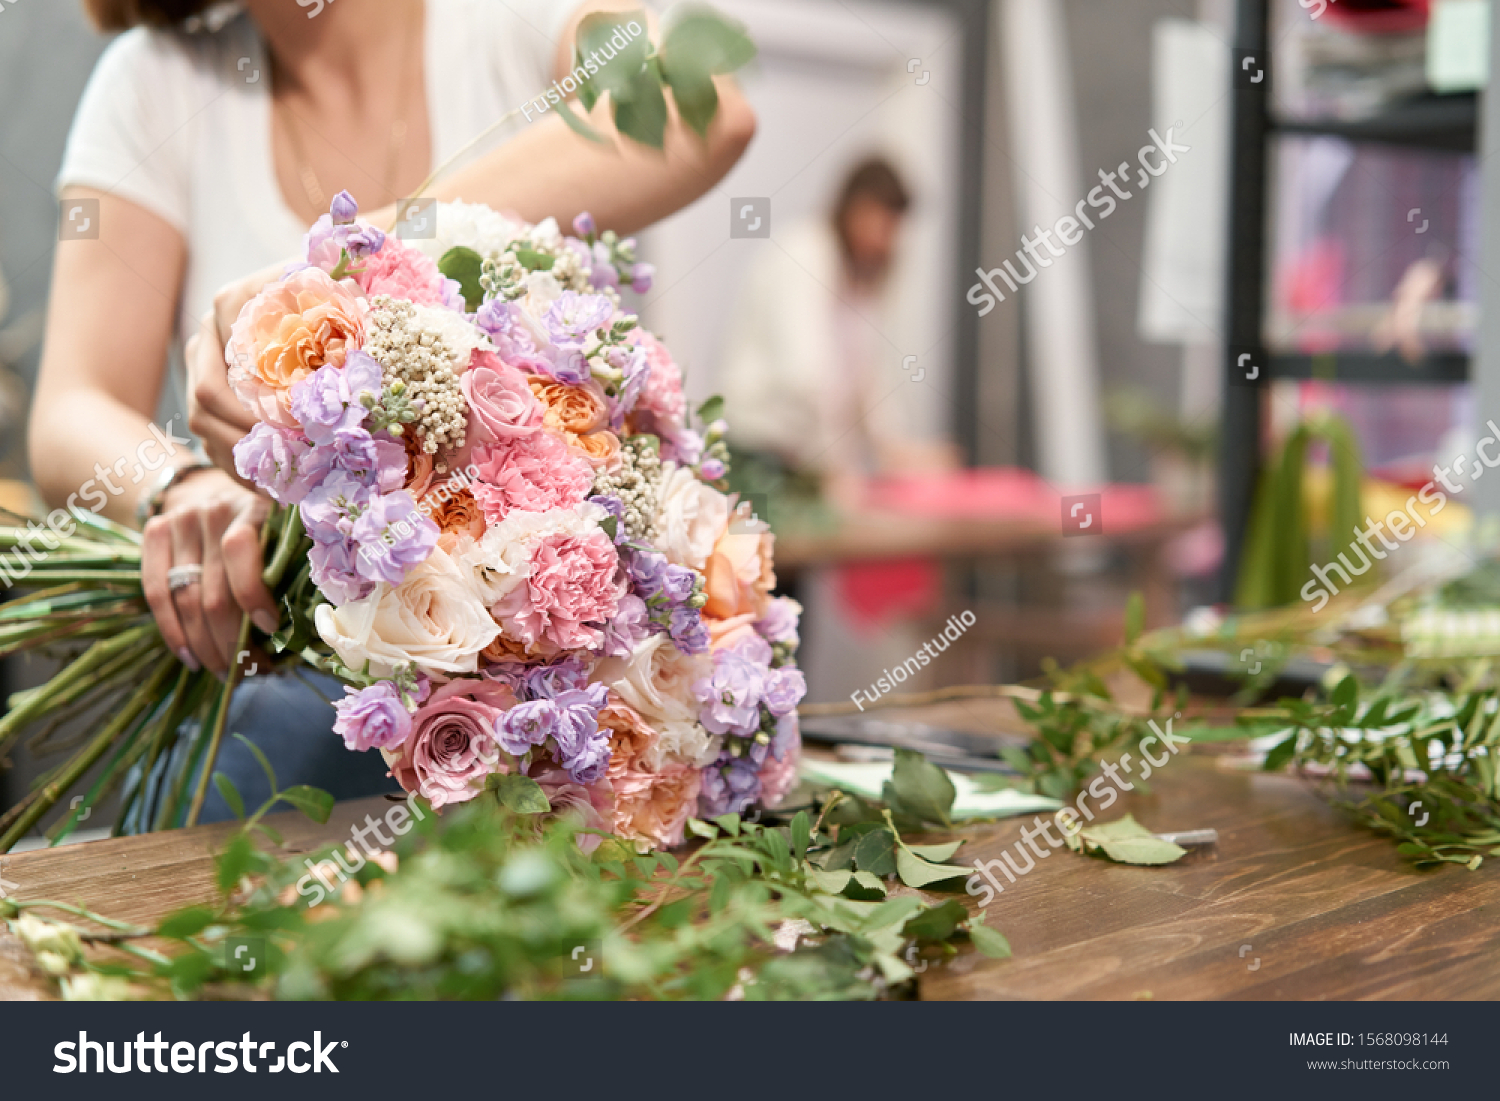 European floral shop concept. Florist woman creates beautiful bouquet of mixed flowers. Handsome fresh bunch. Education, master class and floristry courses. Flowers delivery. #1568098144